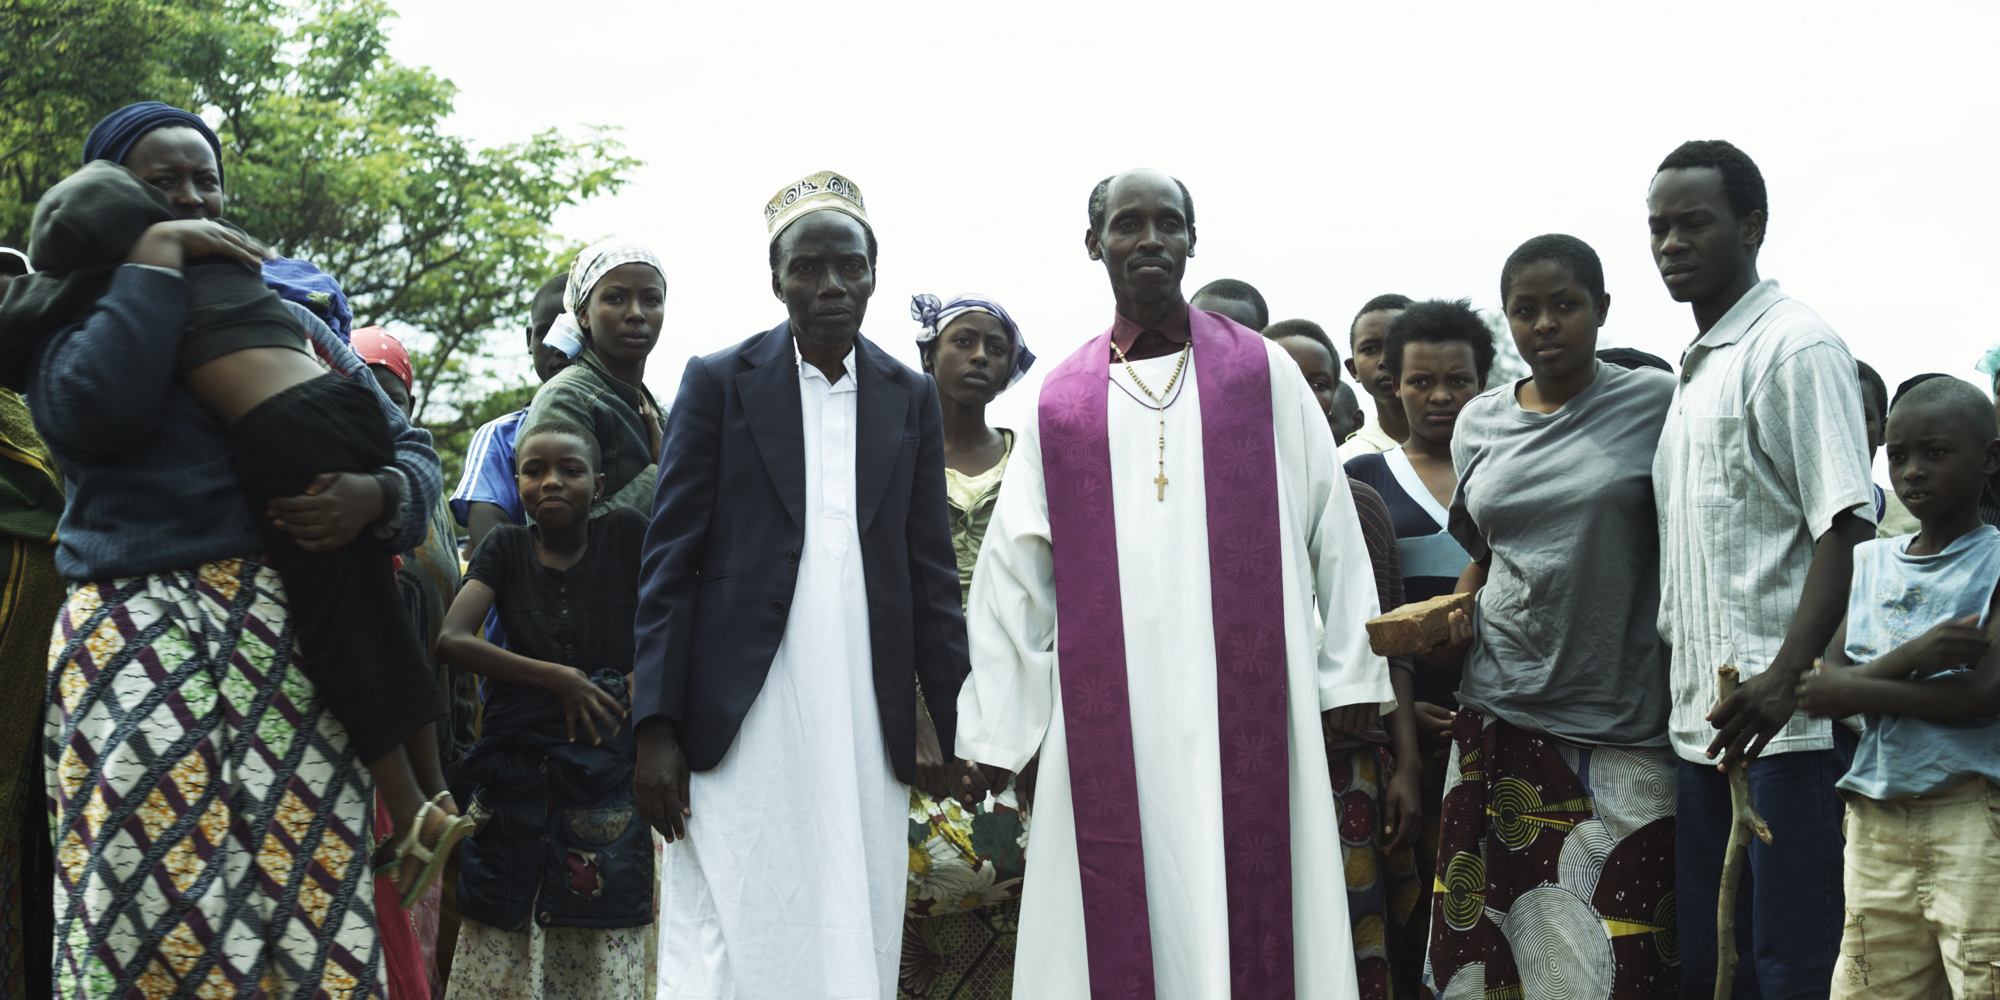 Priest and Imam in Rwanda